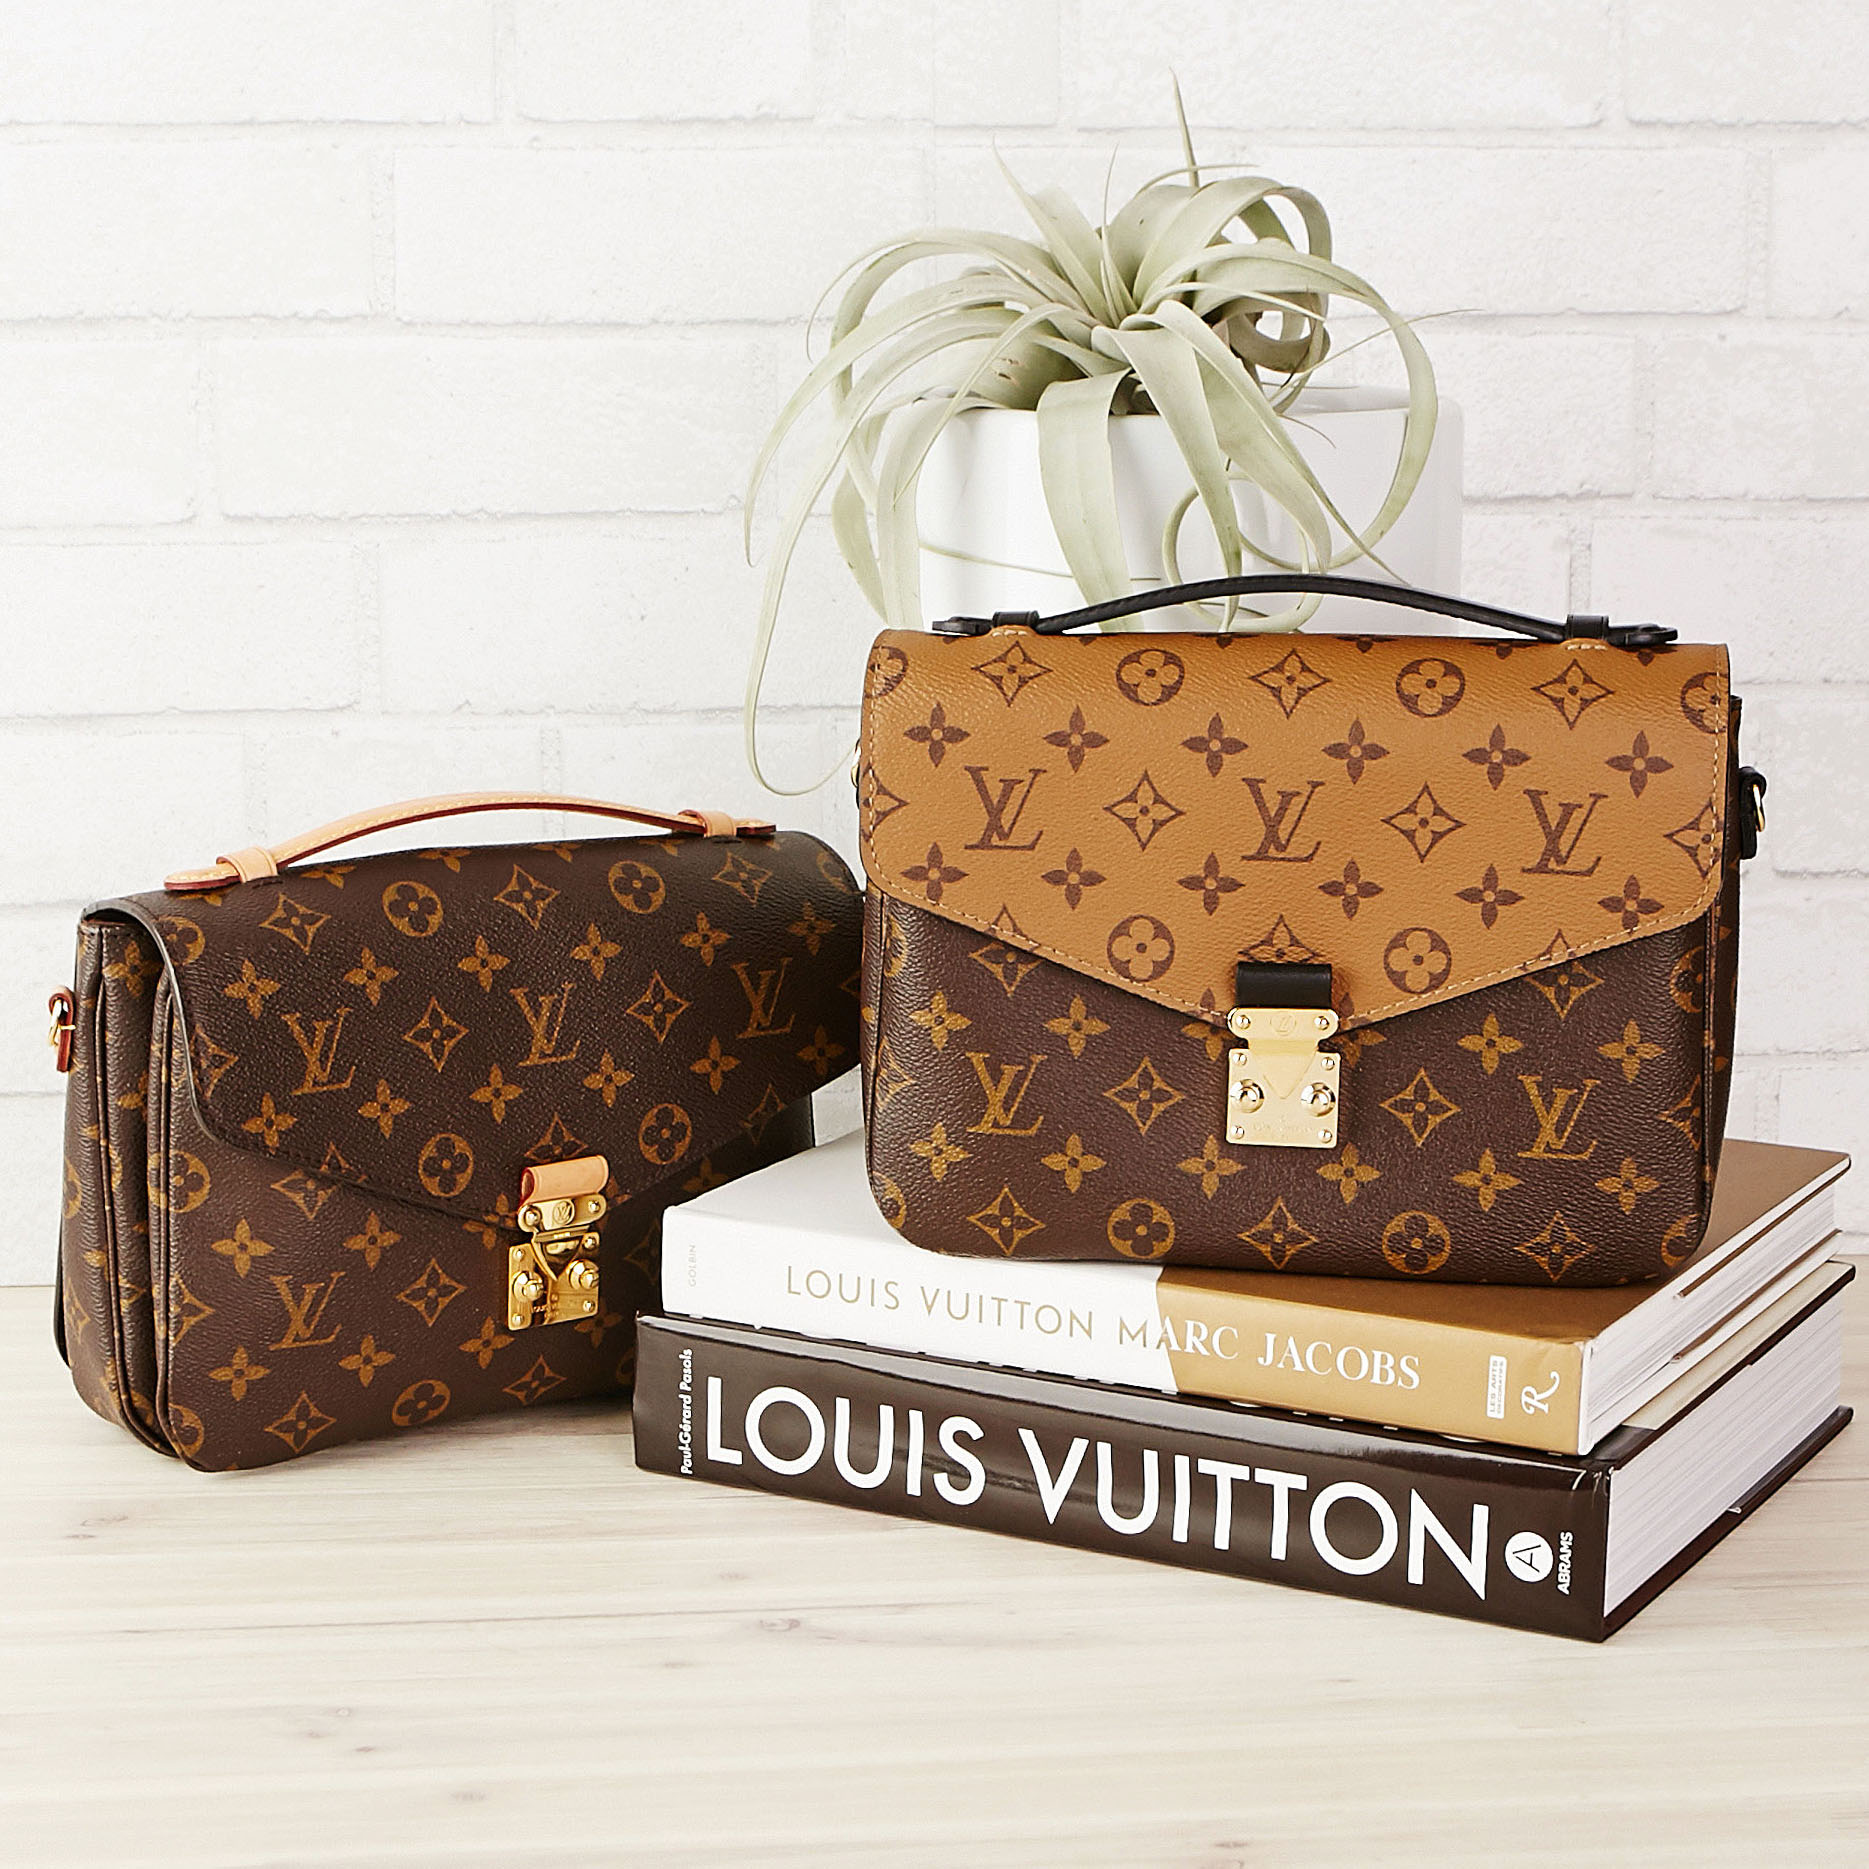 1cd487790ab1 Two Pochette Metis handbags are better than one! Love the Louis Vuitton  Pochette Metis in